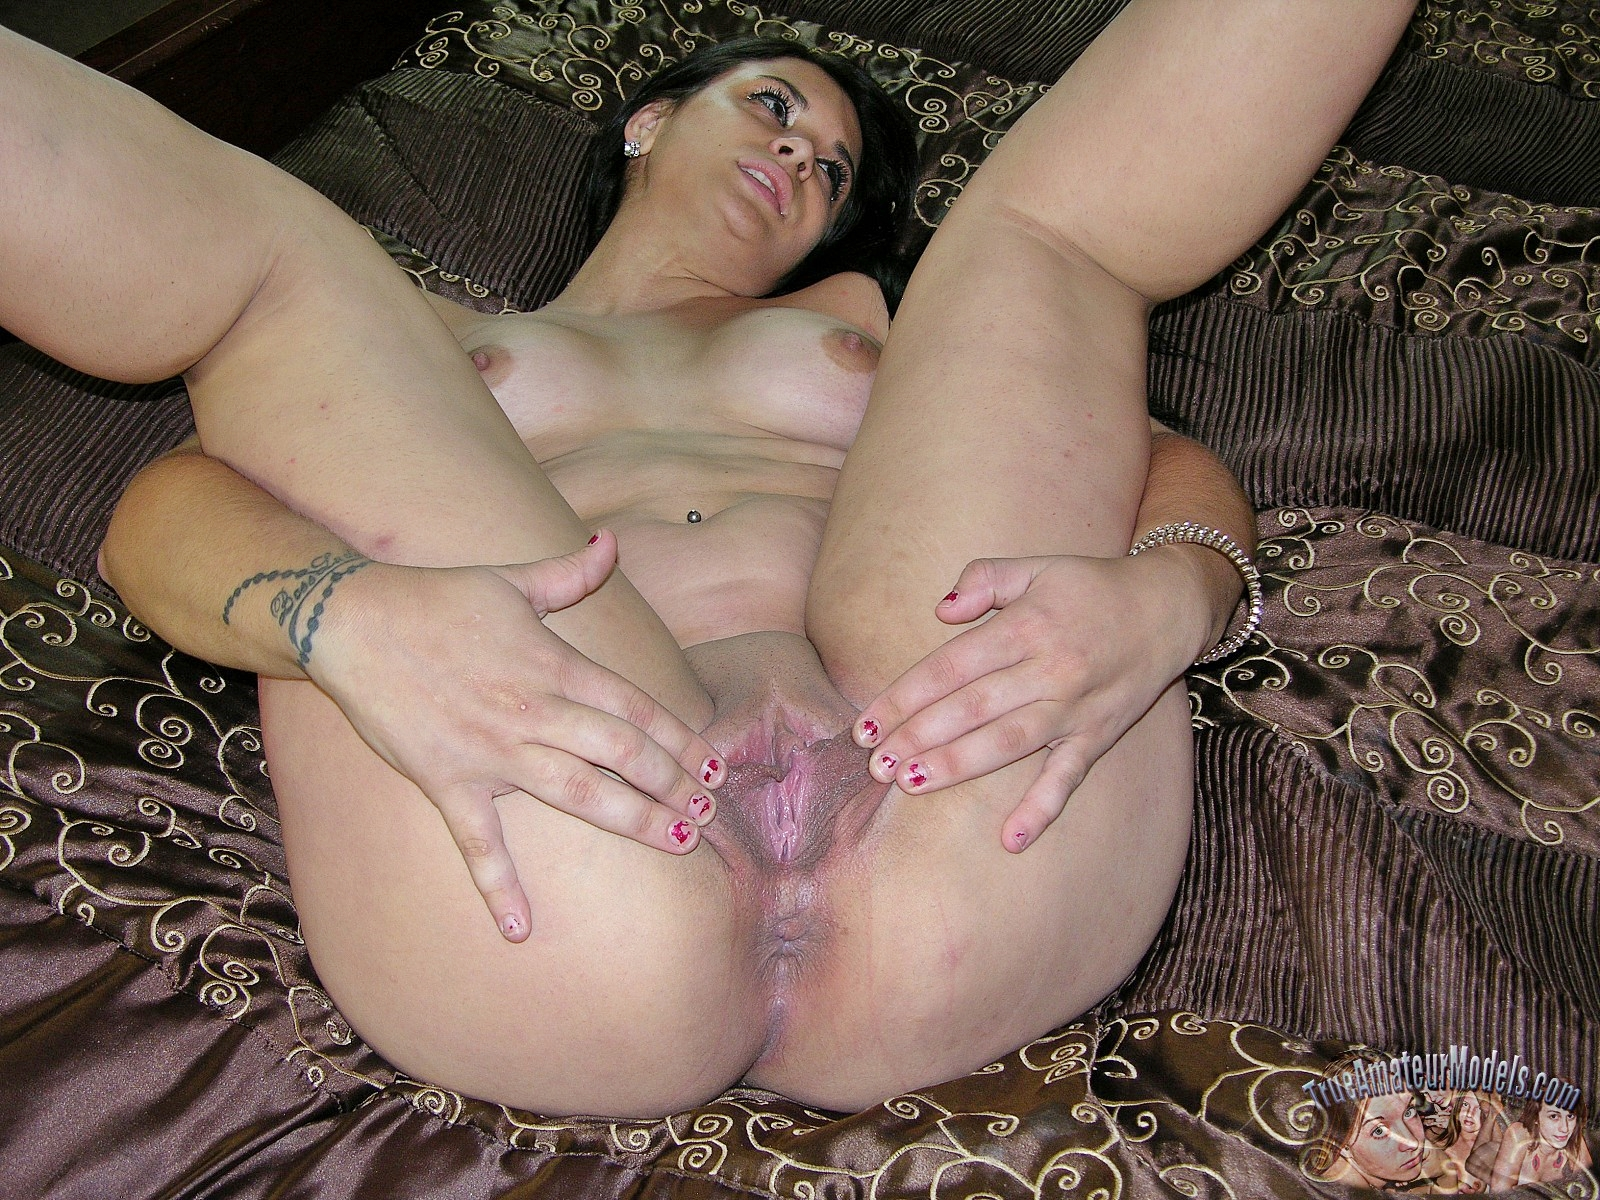 Mexican porn spreading pics galleries 935